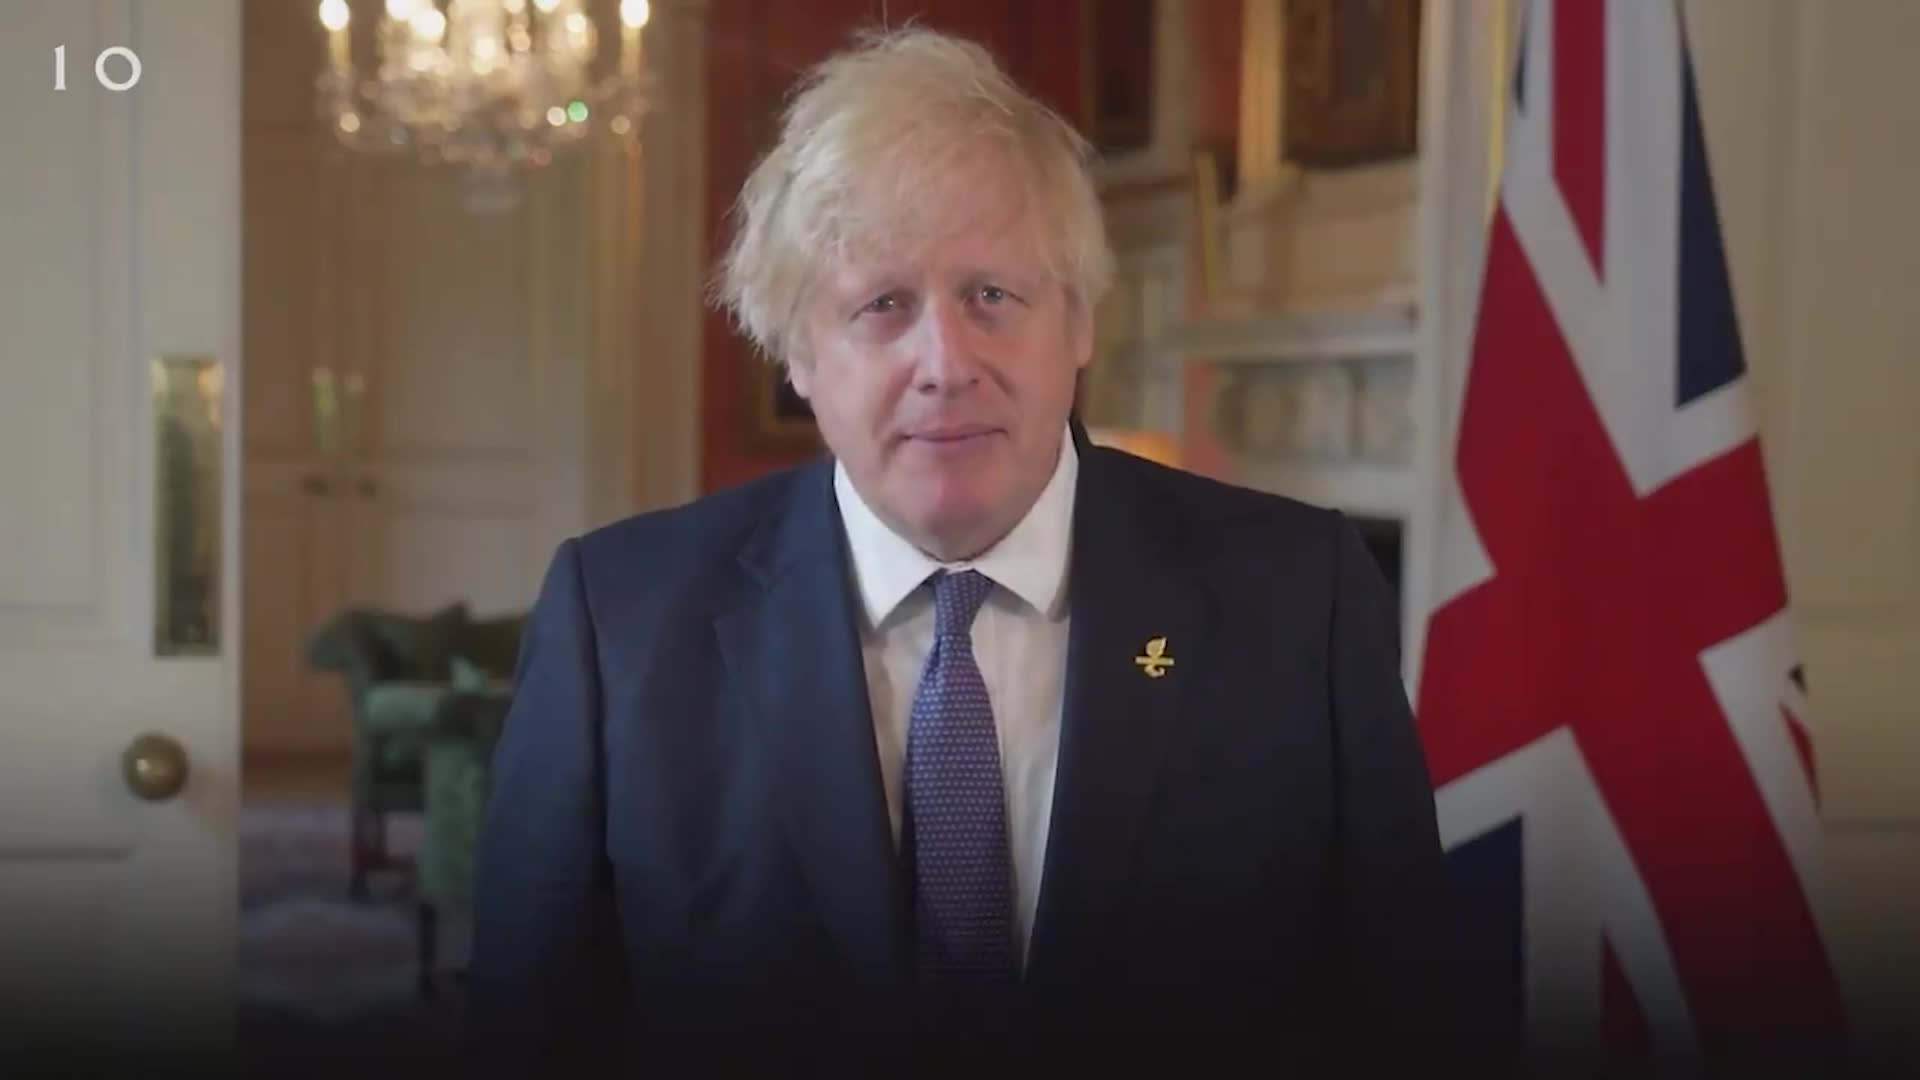 PM wishes Paralympics GB team good luck ahead of Tokyo Games